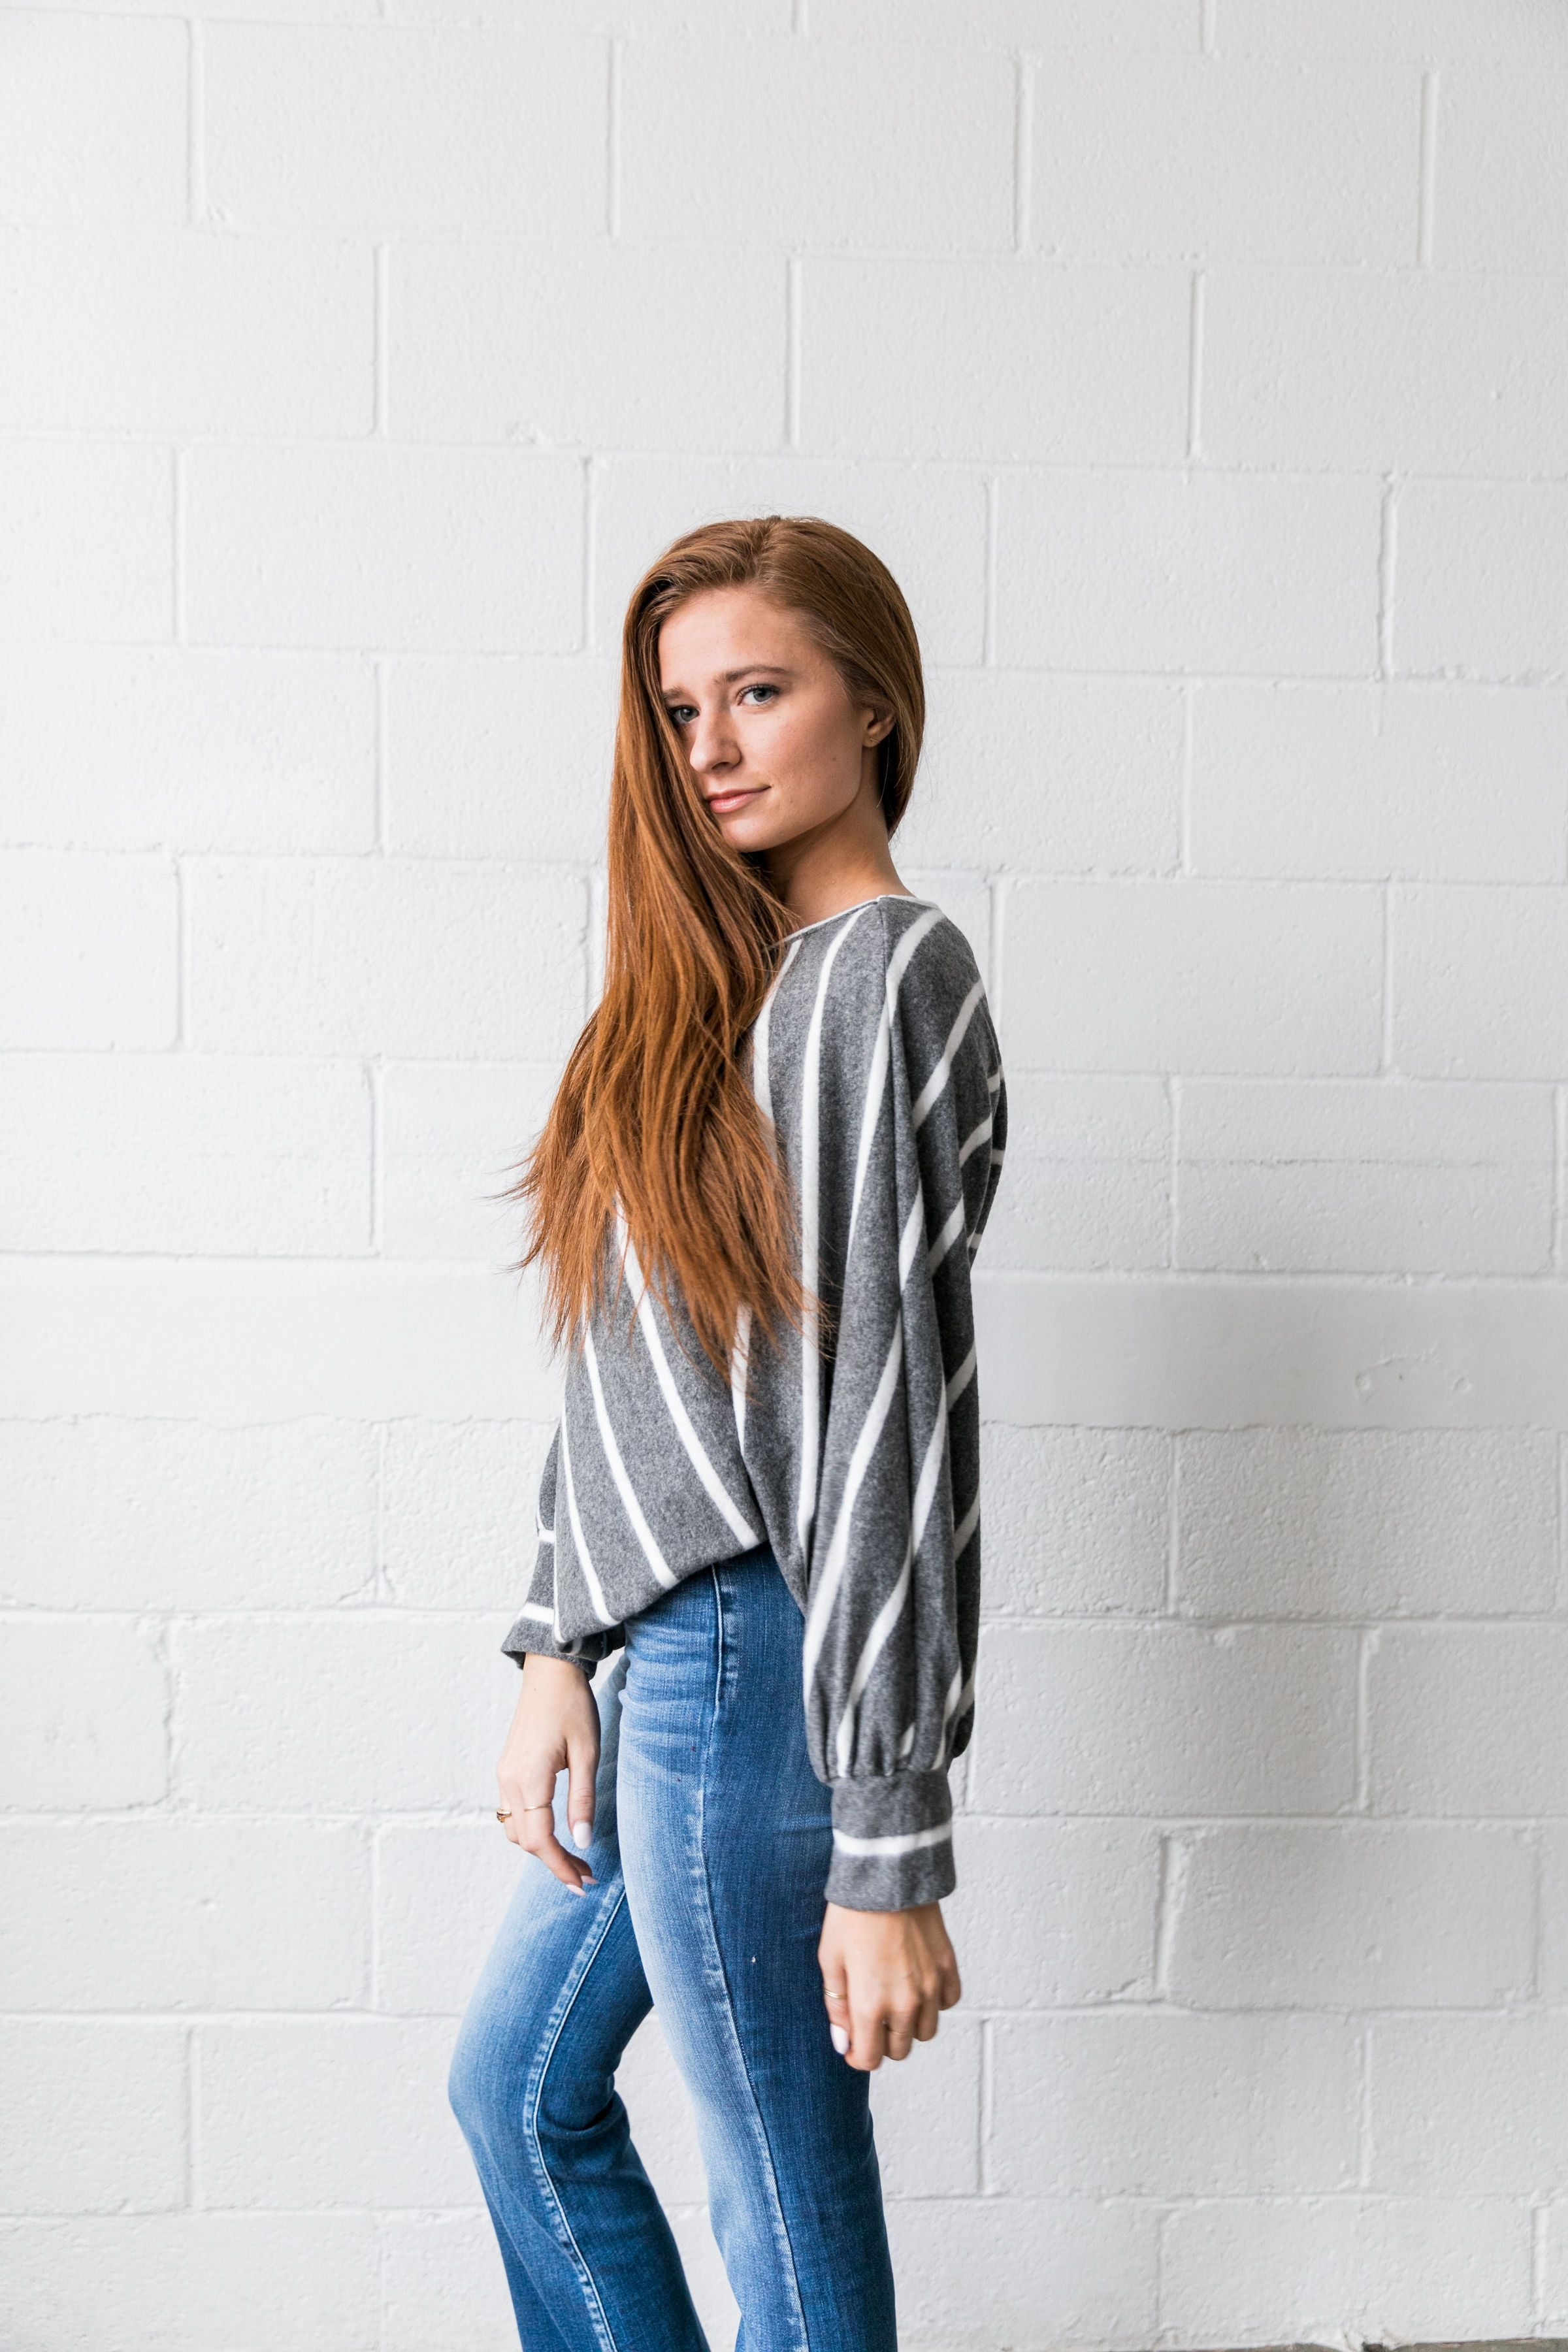 Aim Higher Chevron Striped Top In Charcoal - ALL SALES FINAL